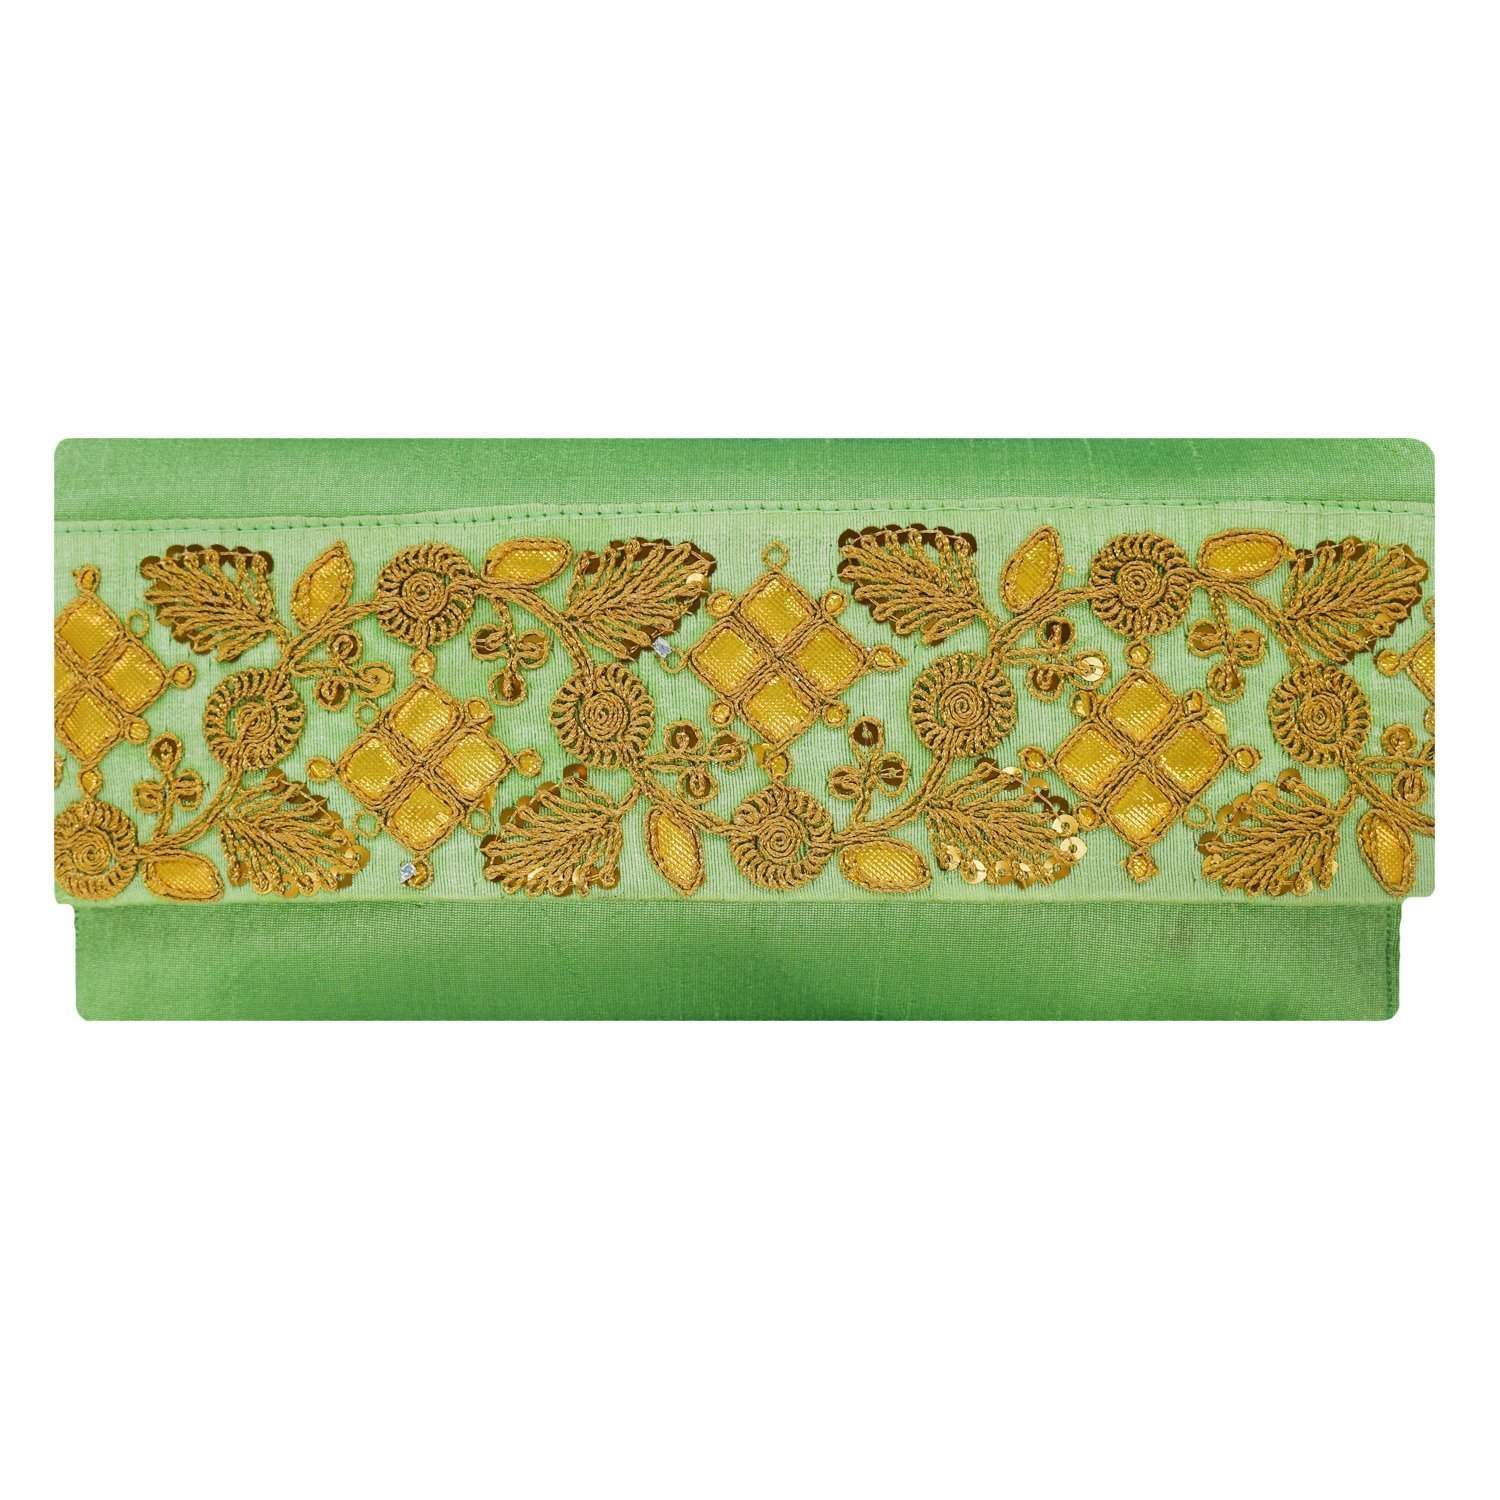 Ethnic Silk Embroidery Work Clutch (Green) - Bagaholics Gift